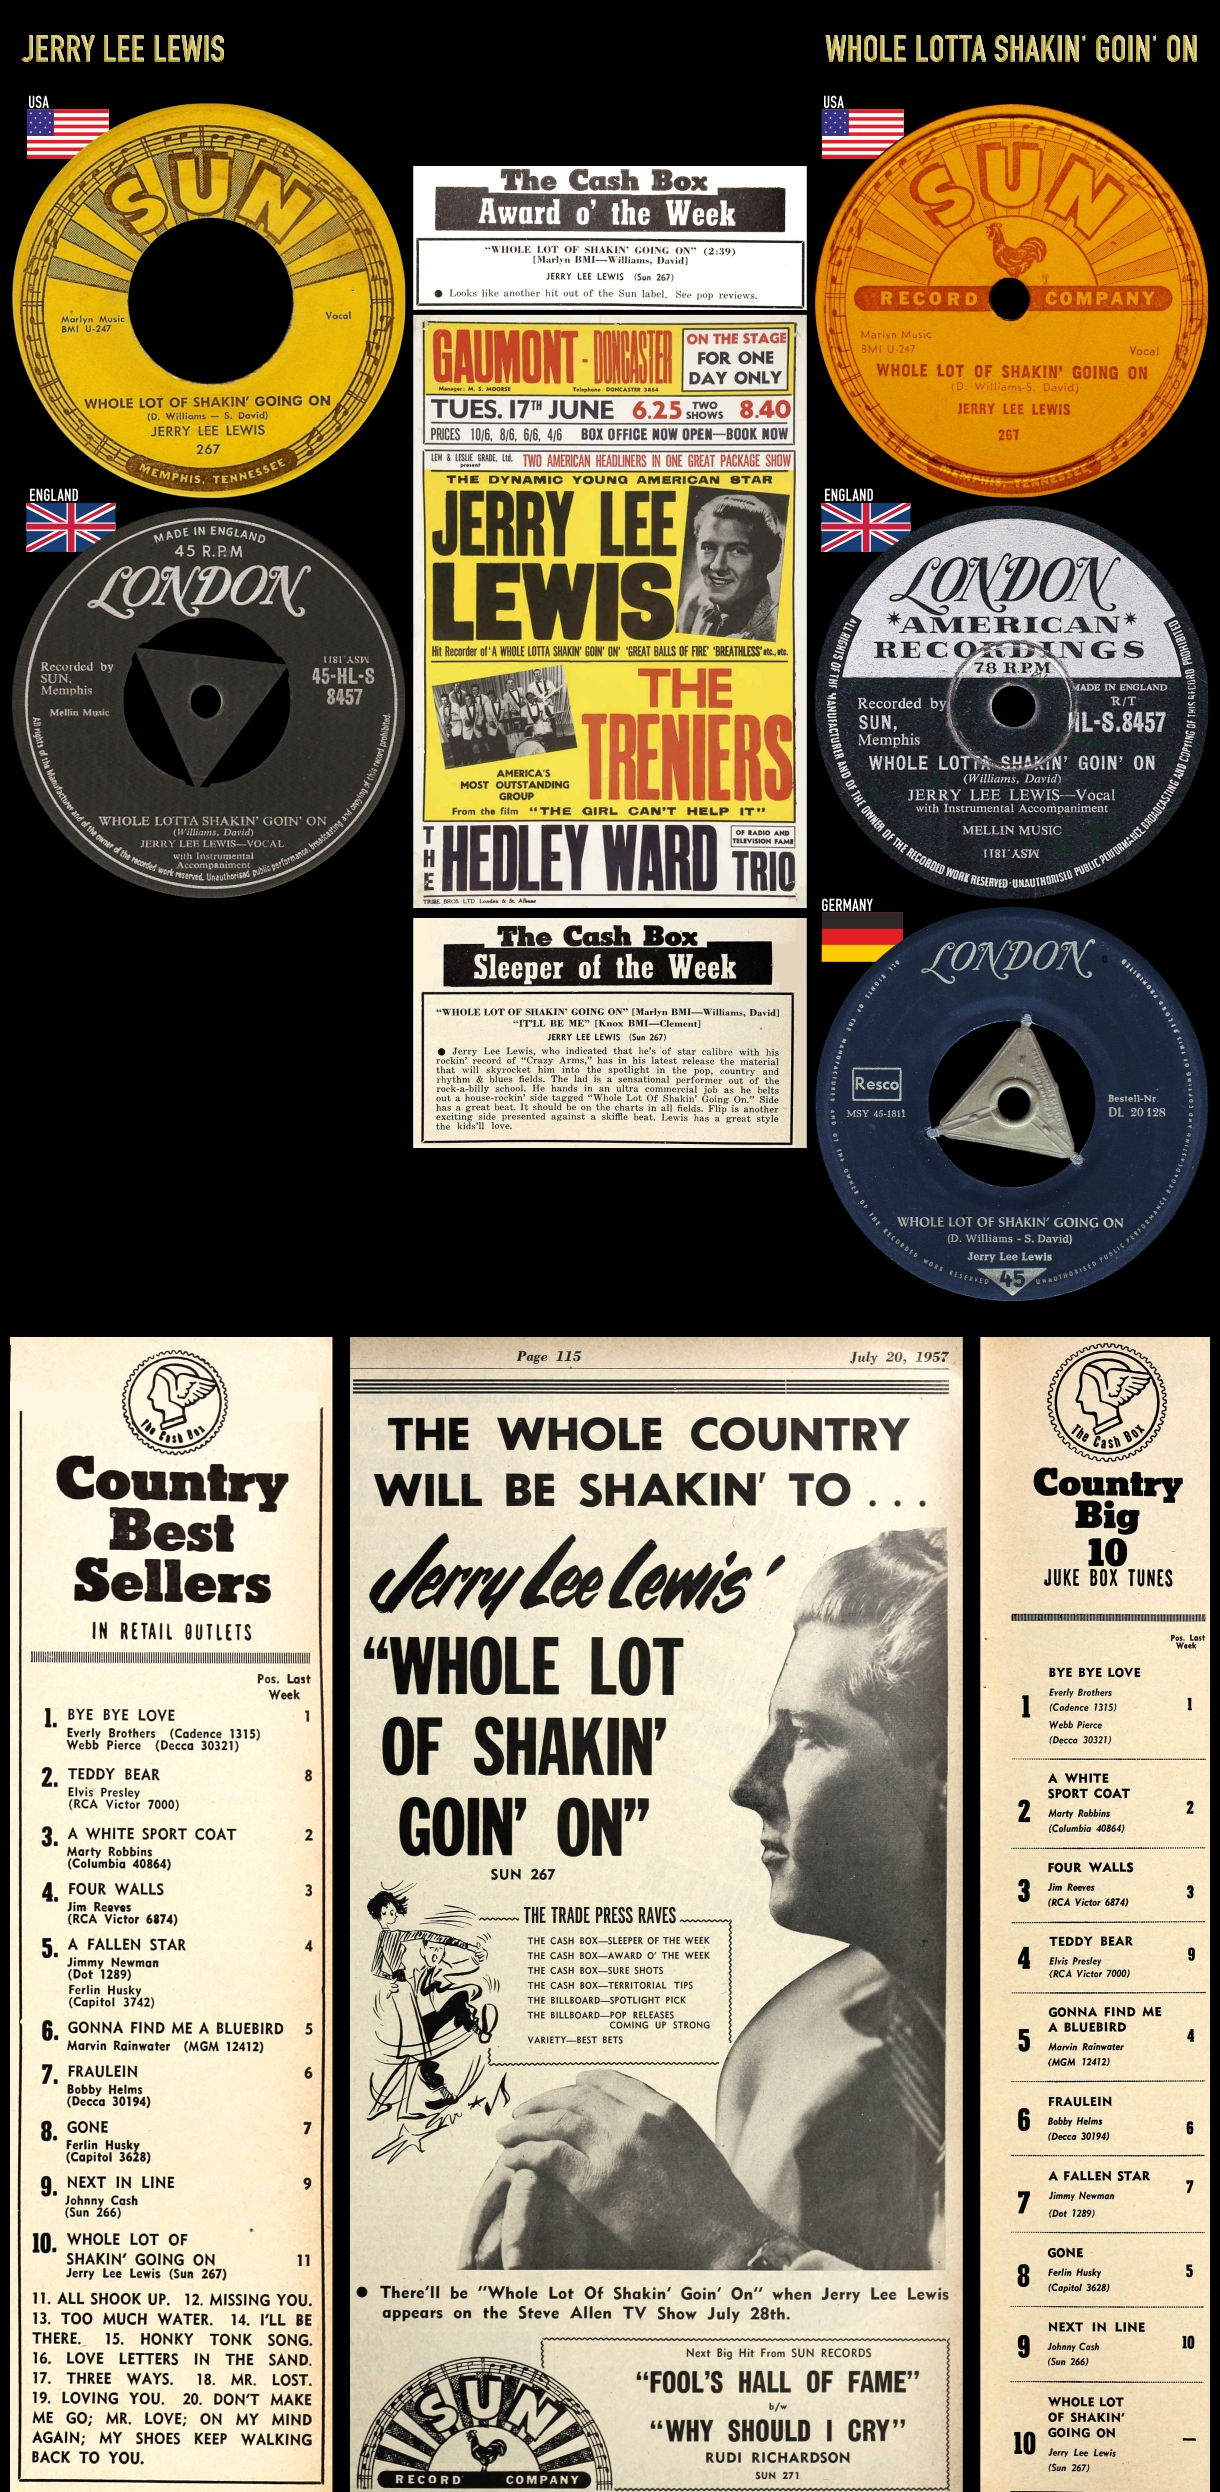 570622_Jerry Lee Lewis_Whole Lotta Shakin' Goin' On